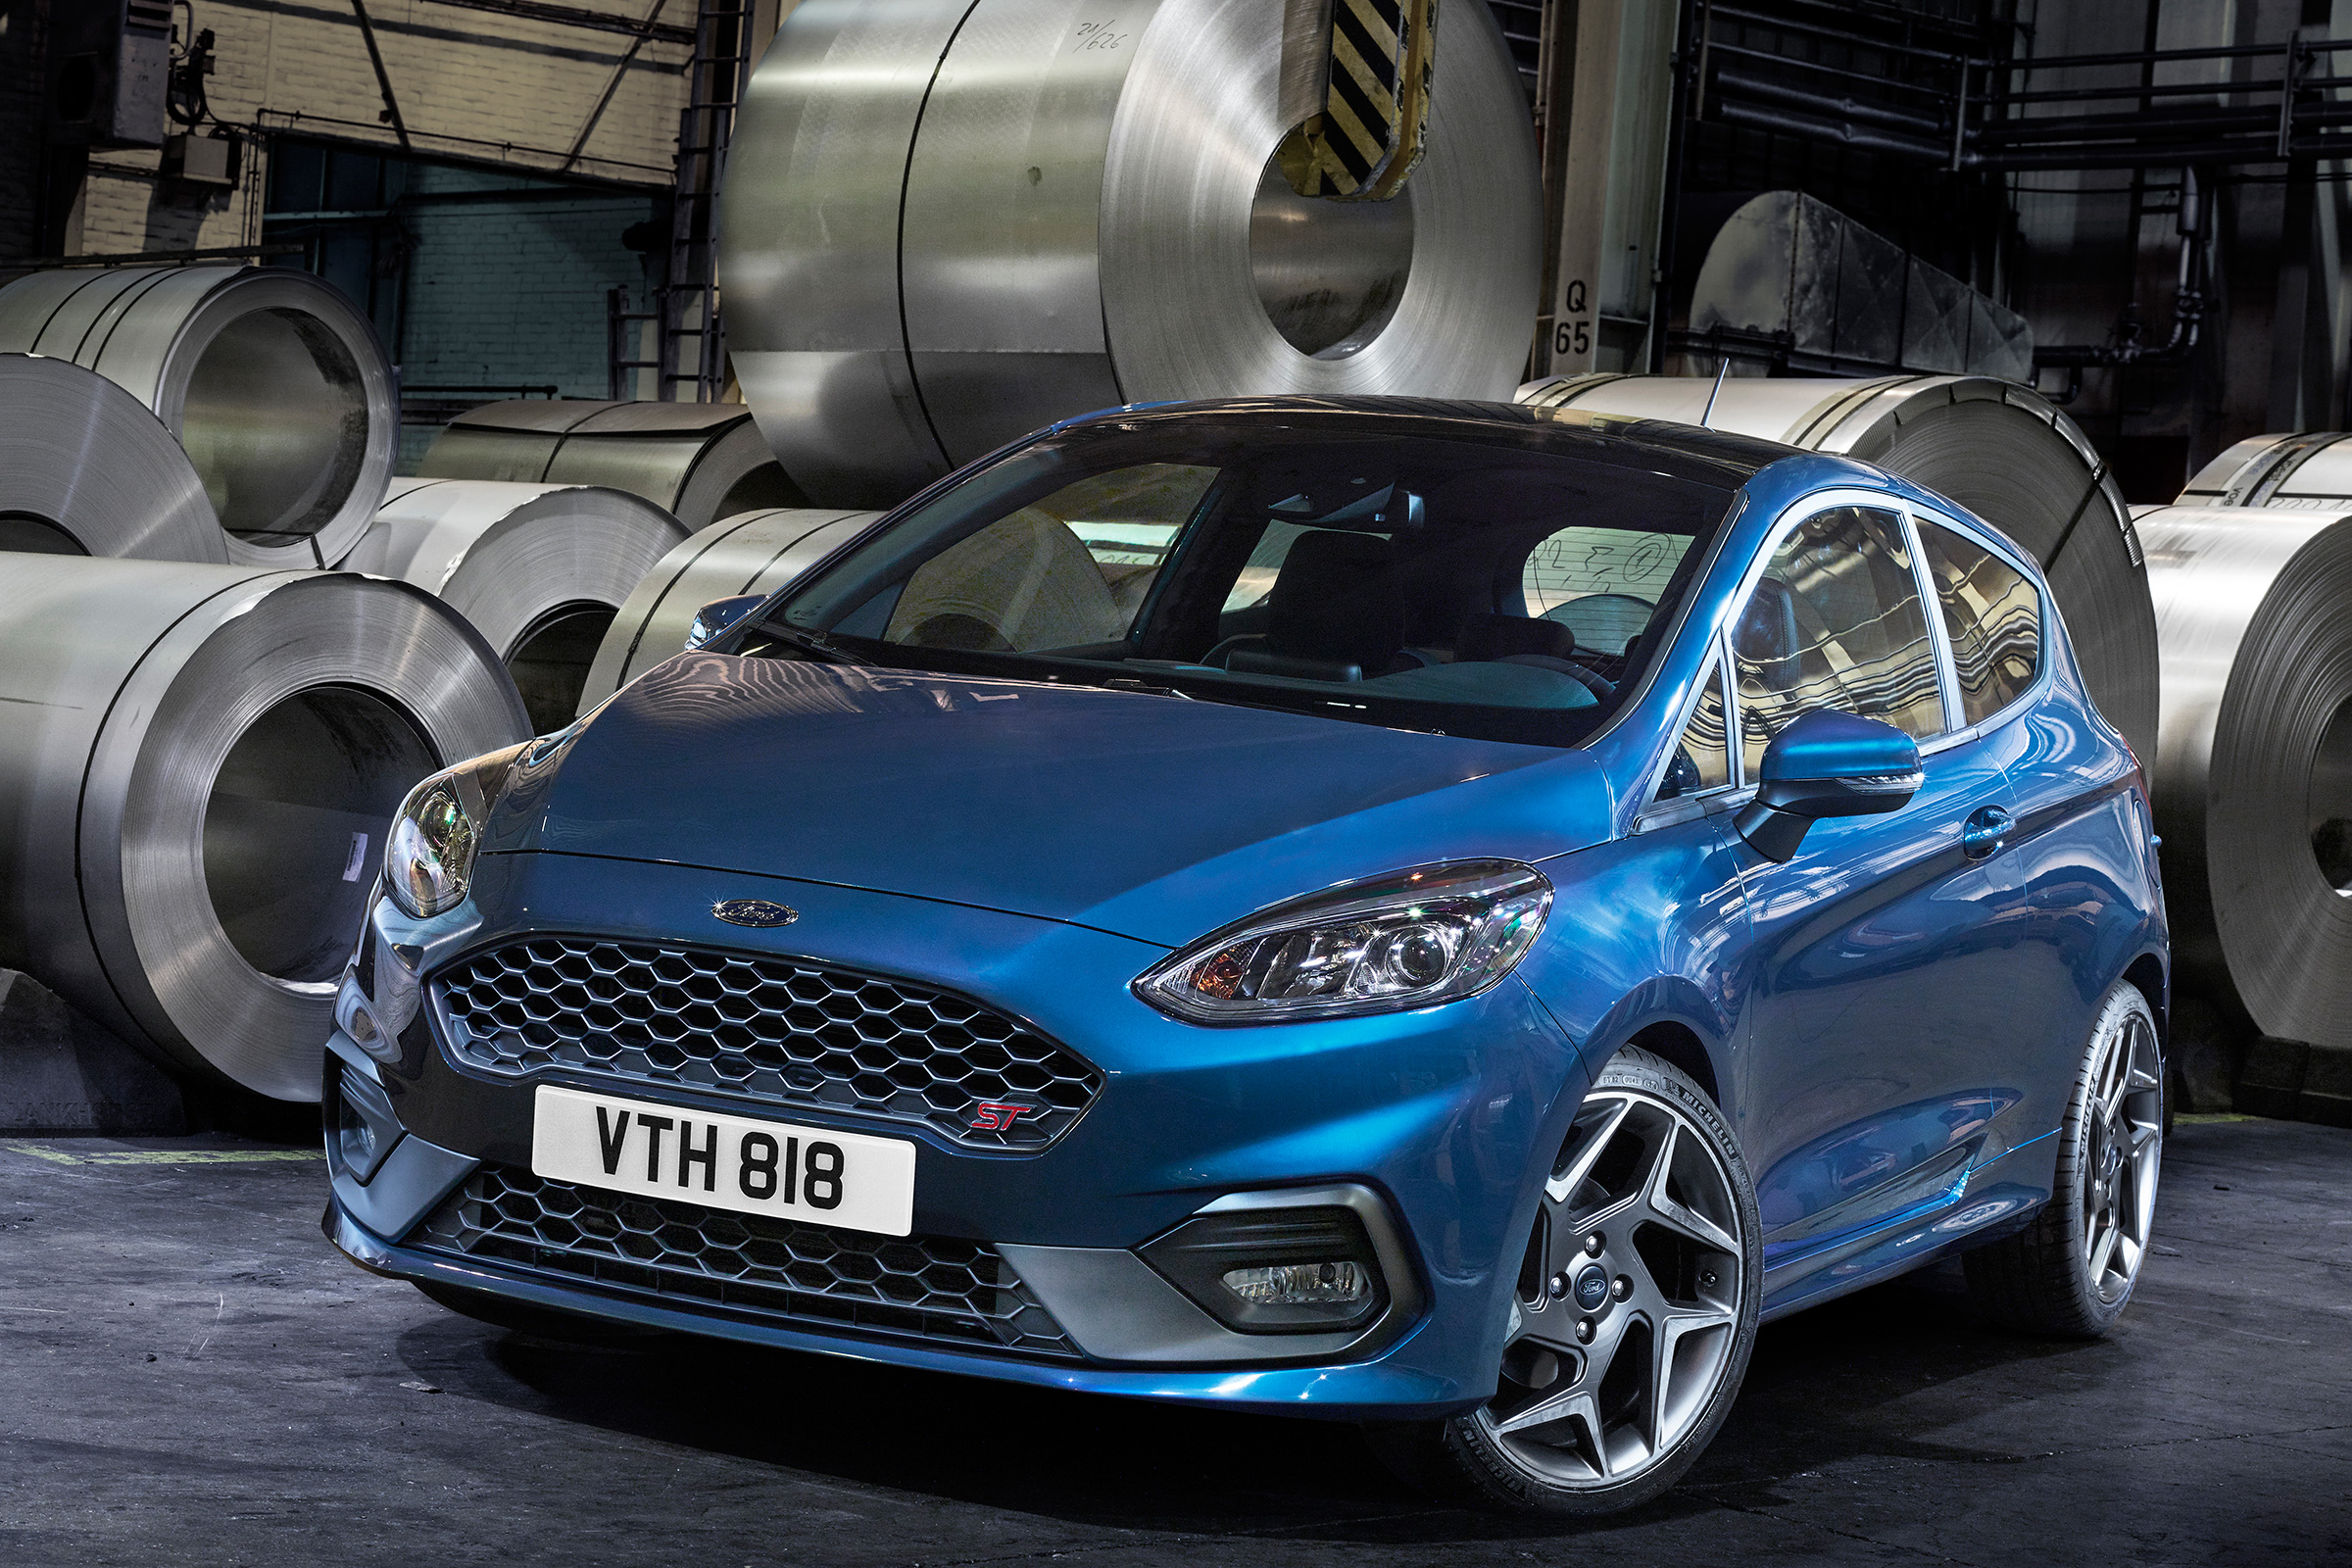 2018 Ford Fiesta ST Exterior Blue Metallic (Photo 2 of 14)